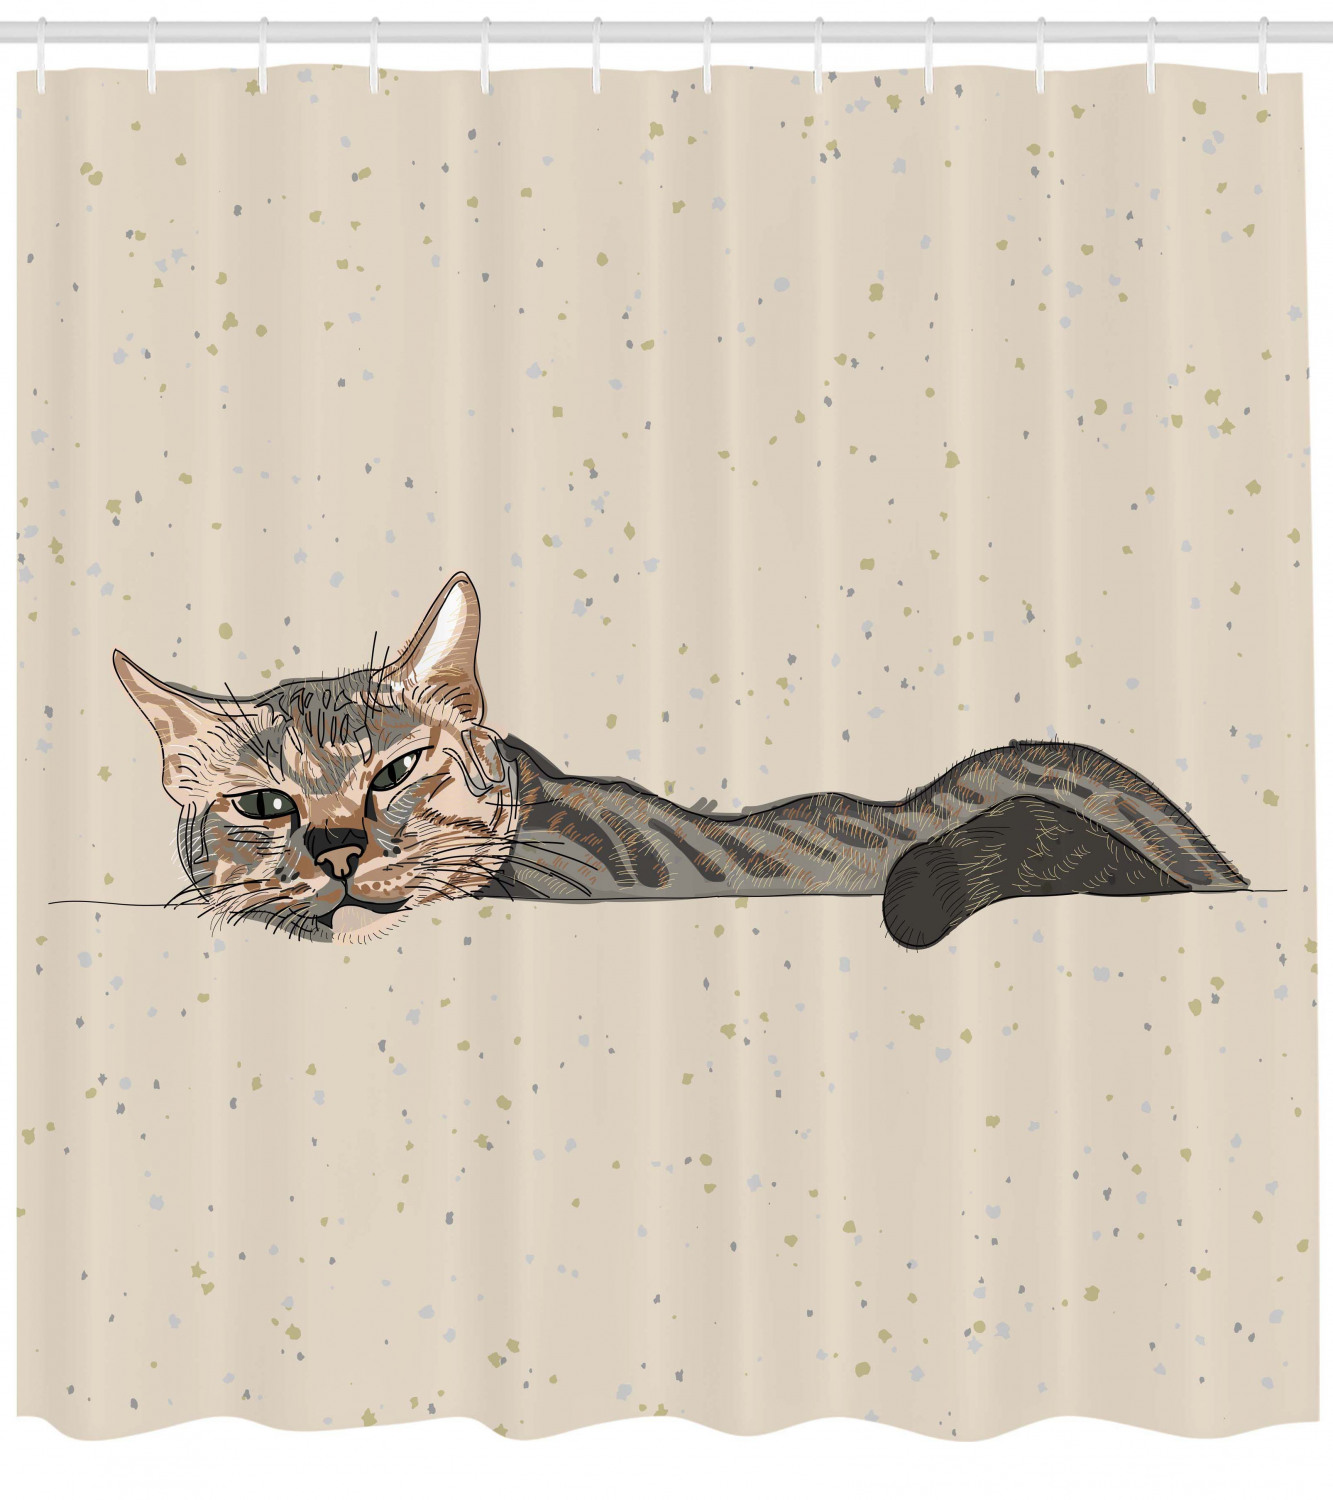 Cat Shower Curtain Lazy Sleepy Cat Figure In Earth Tones Cute Furry Mascot Indoor Pet Art Illustration Fabric Bathroom Set With Hooks Grey Beige